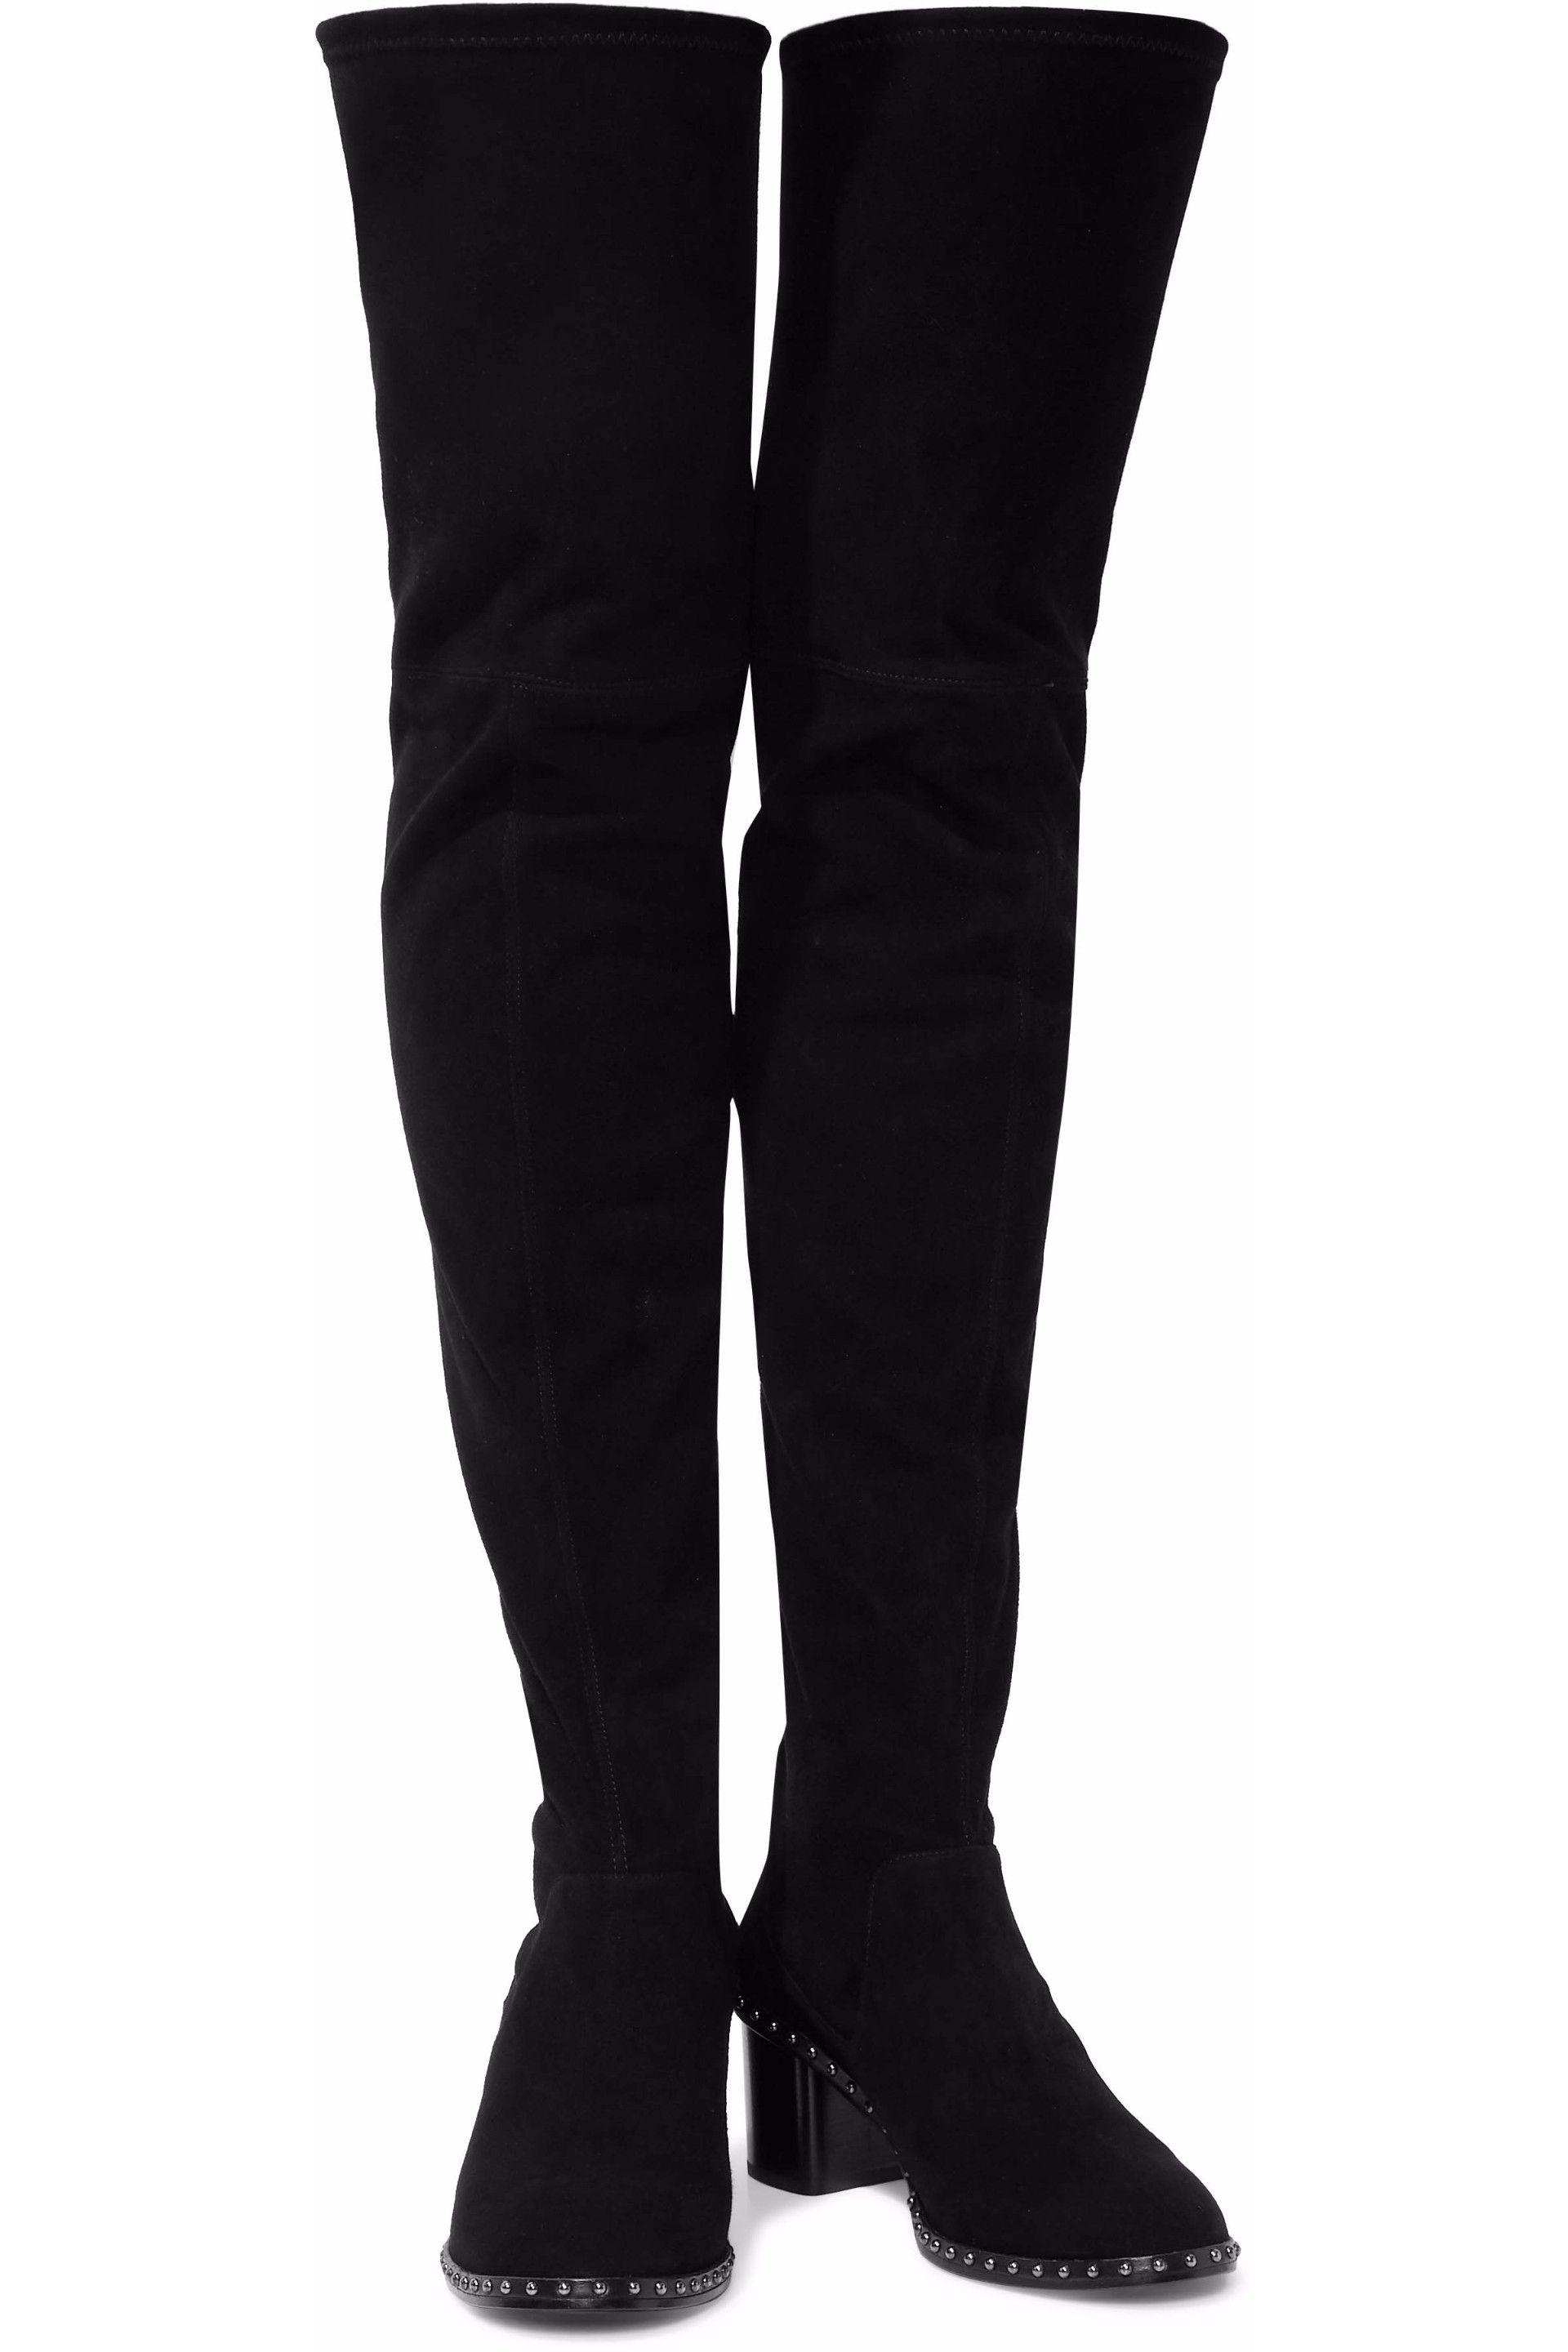 86e0f301018 Rag   Bone - Woman Rina Suede Over-the-knee Boots Black - Lyst. View  fullscreen